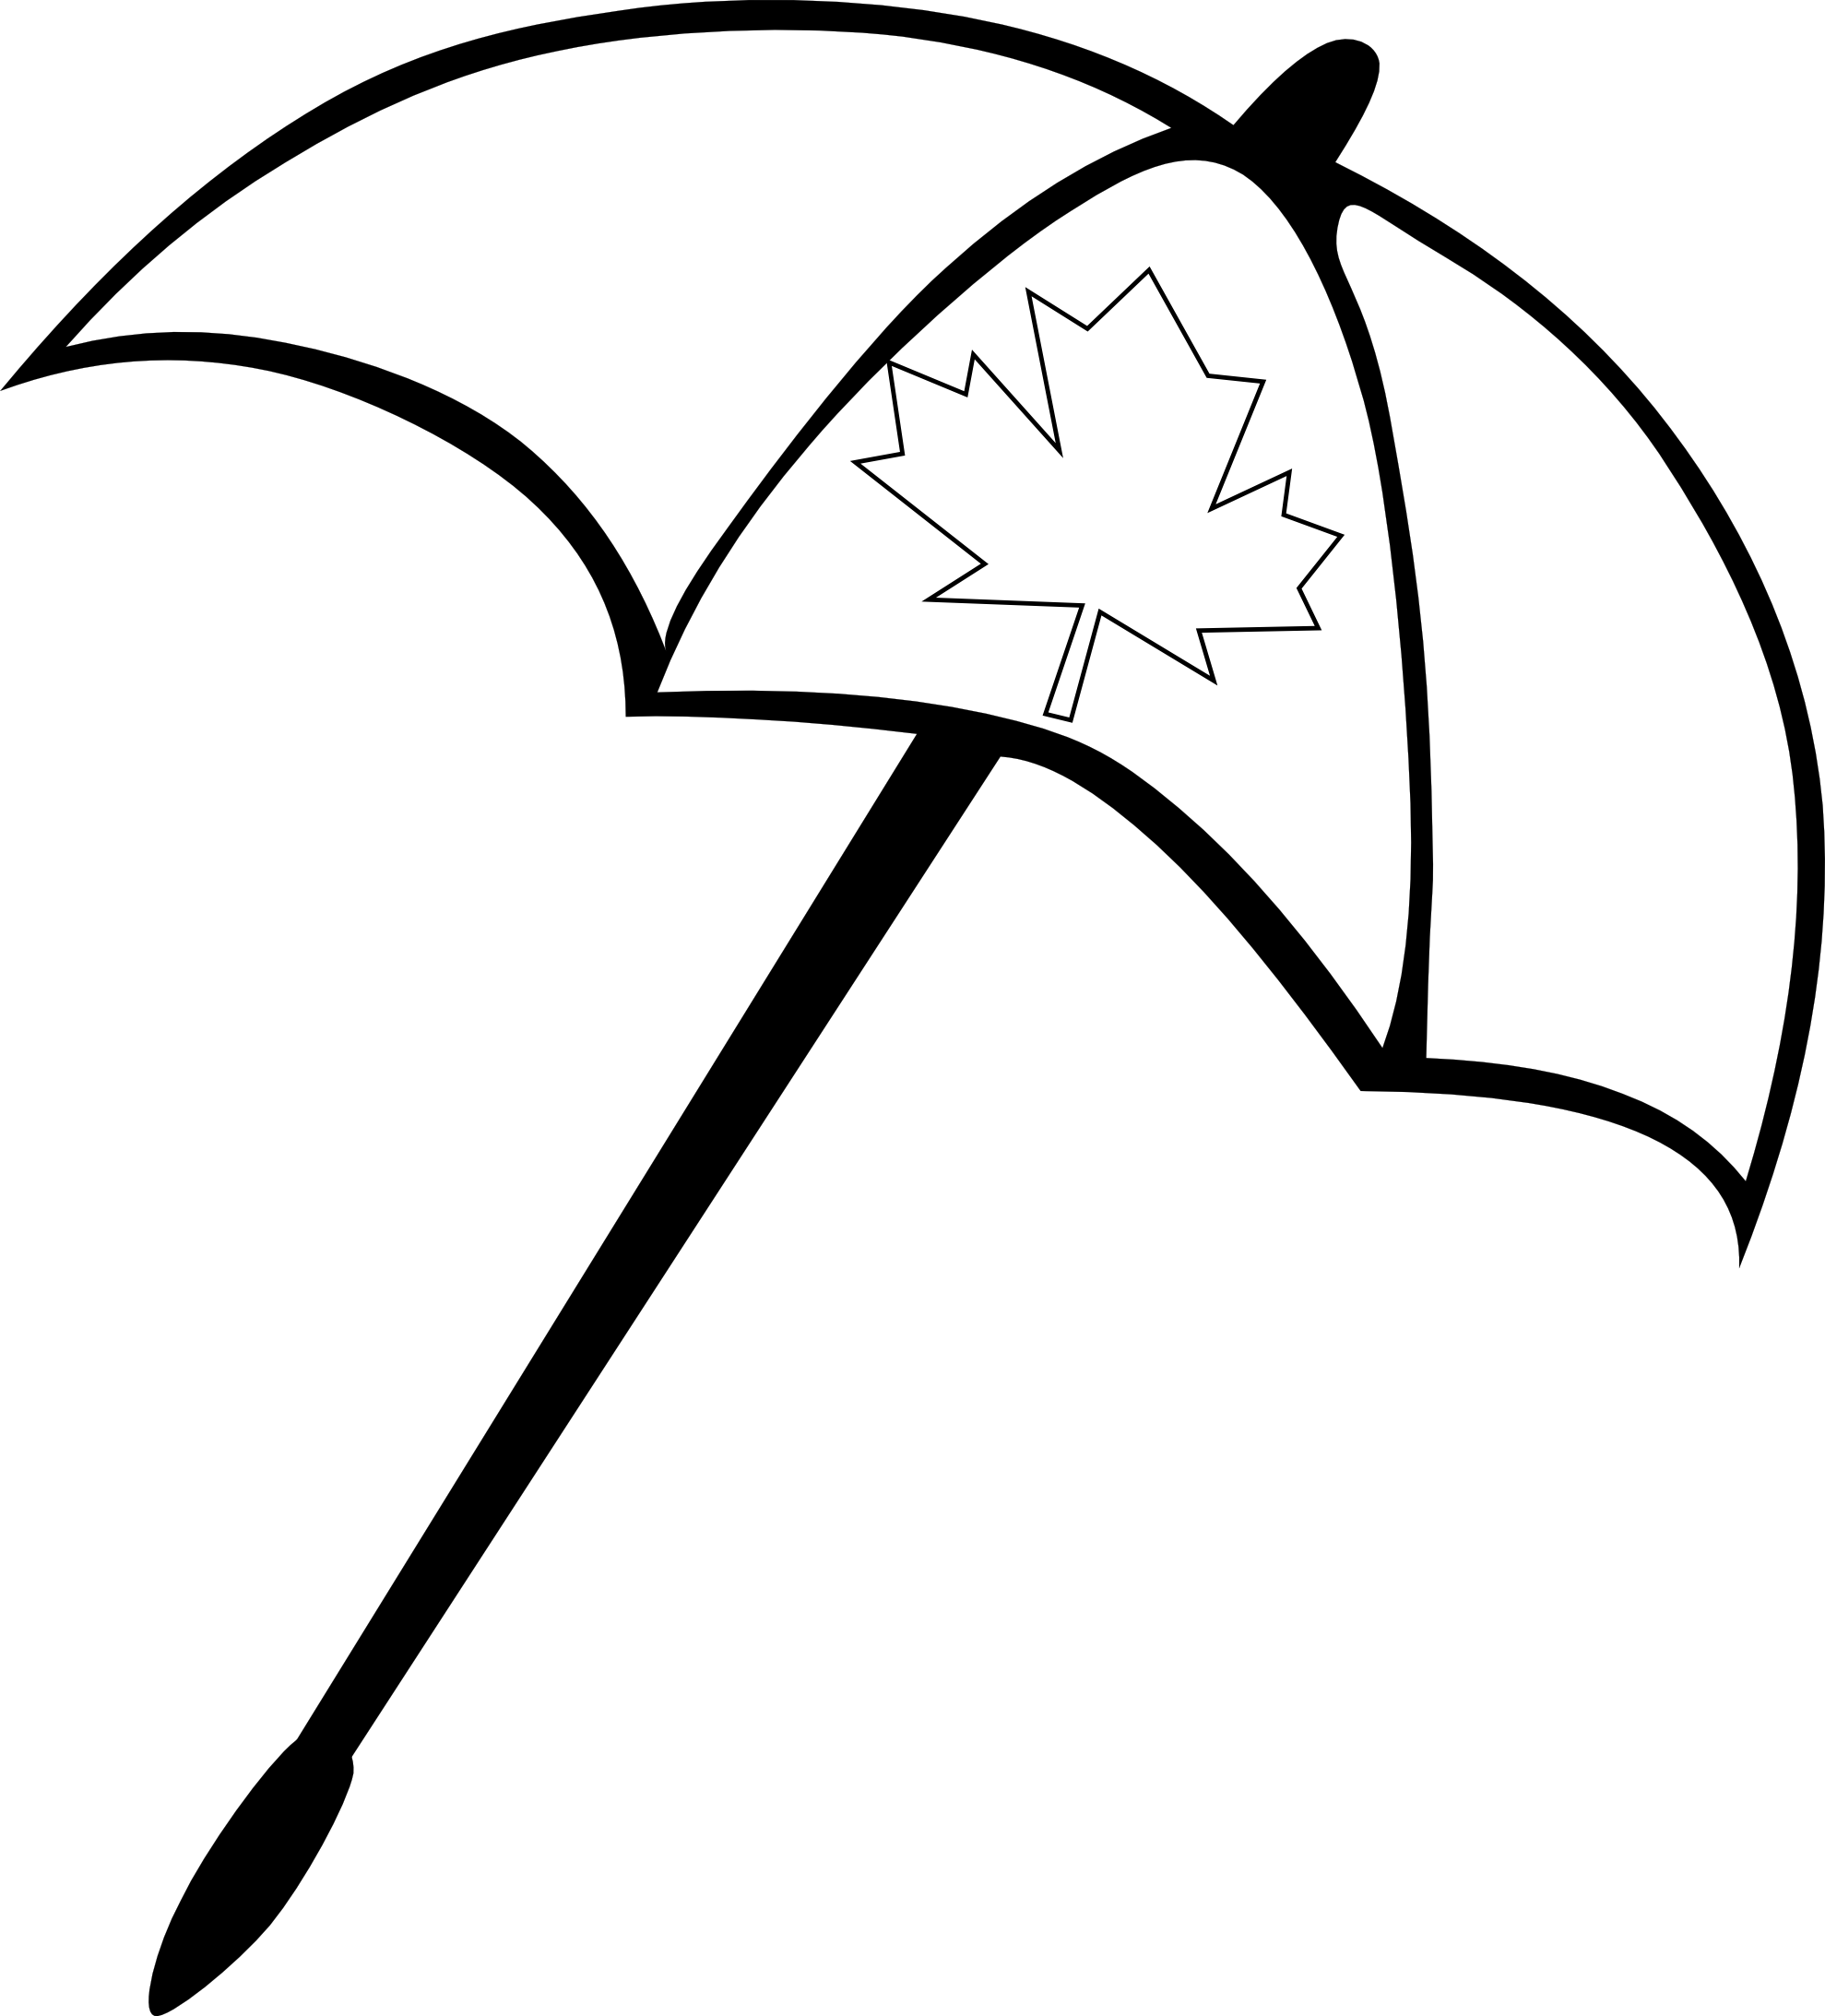 Child sun drawing clipart black and white clip black and white library Beach Drawing Black And White at GetDrawings.com | Free for personal ... clip black and white library